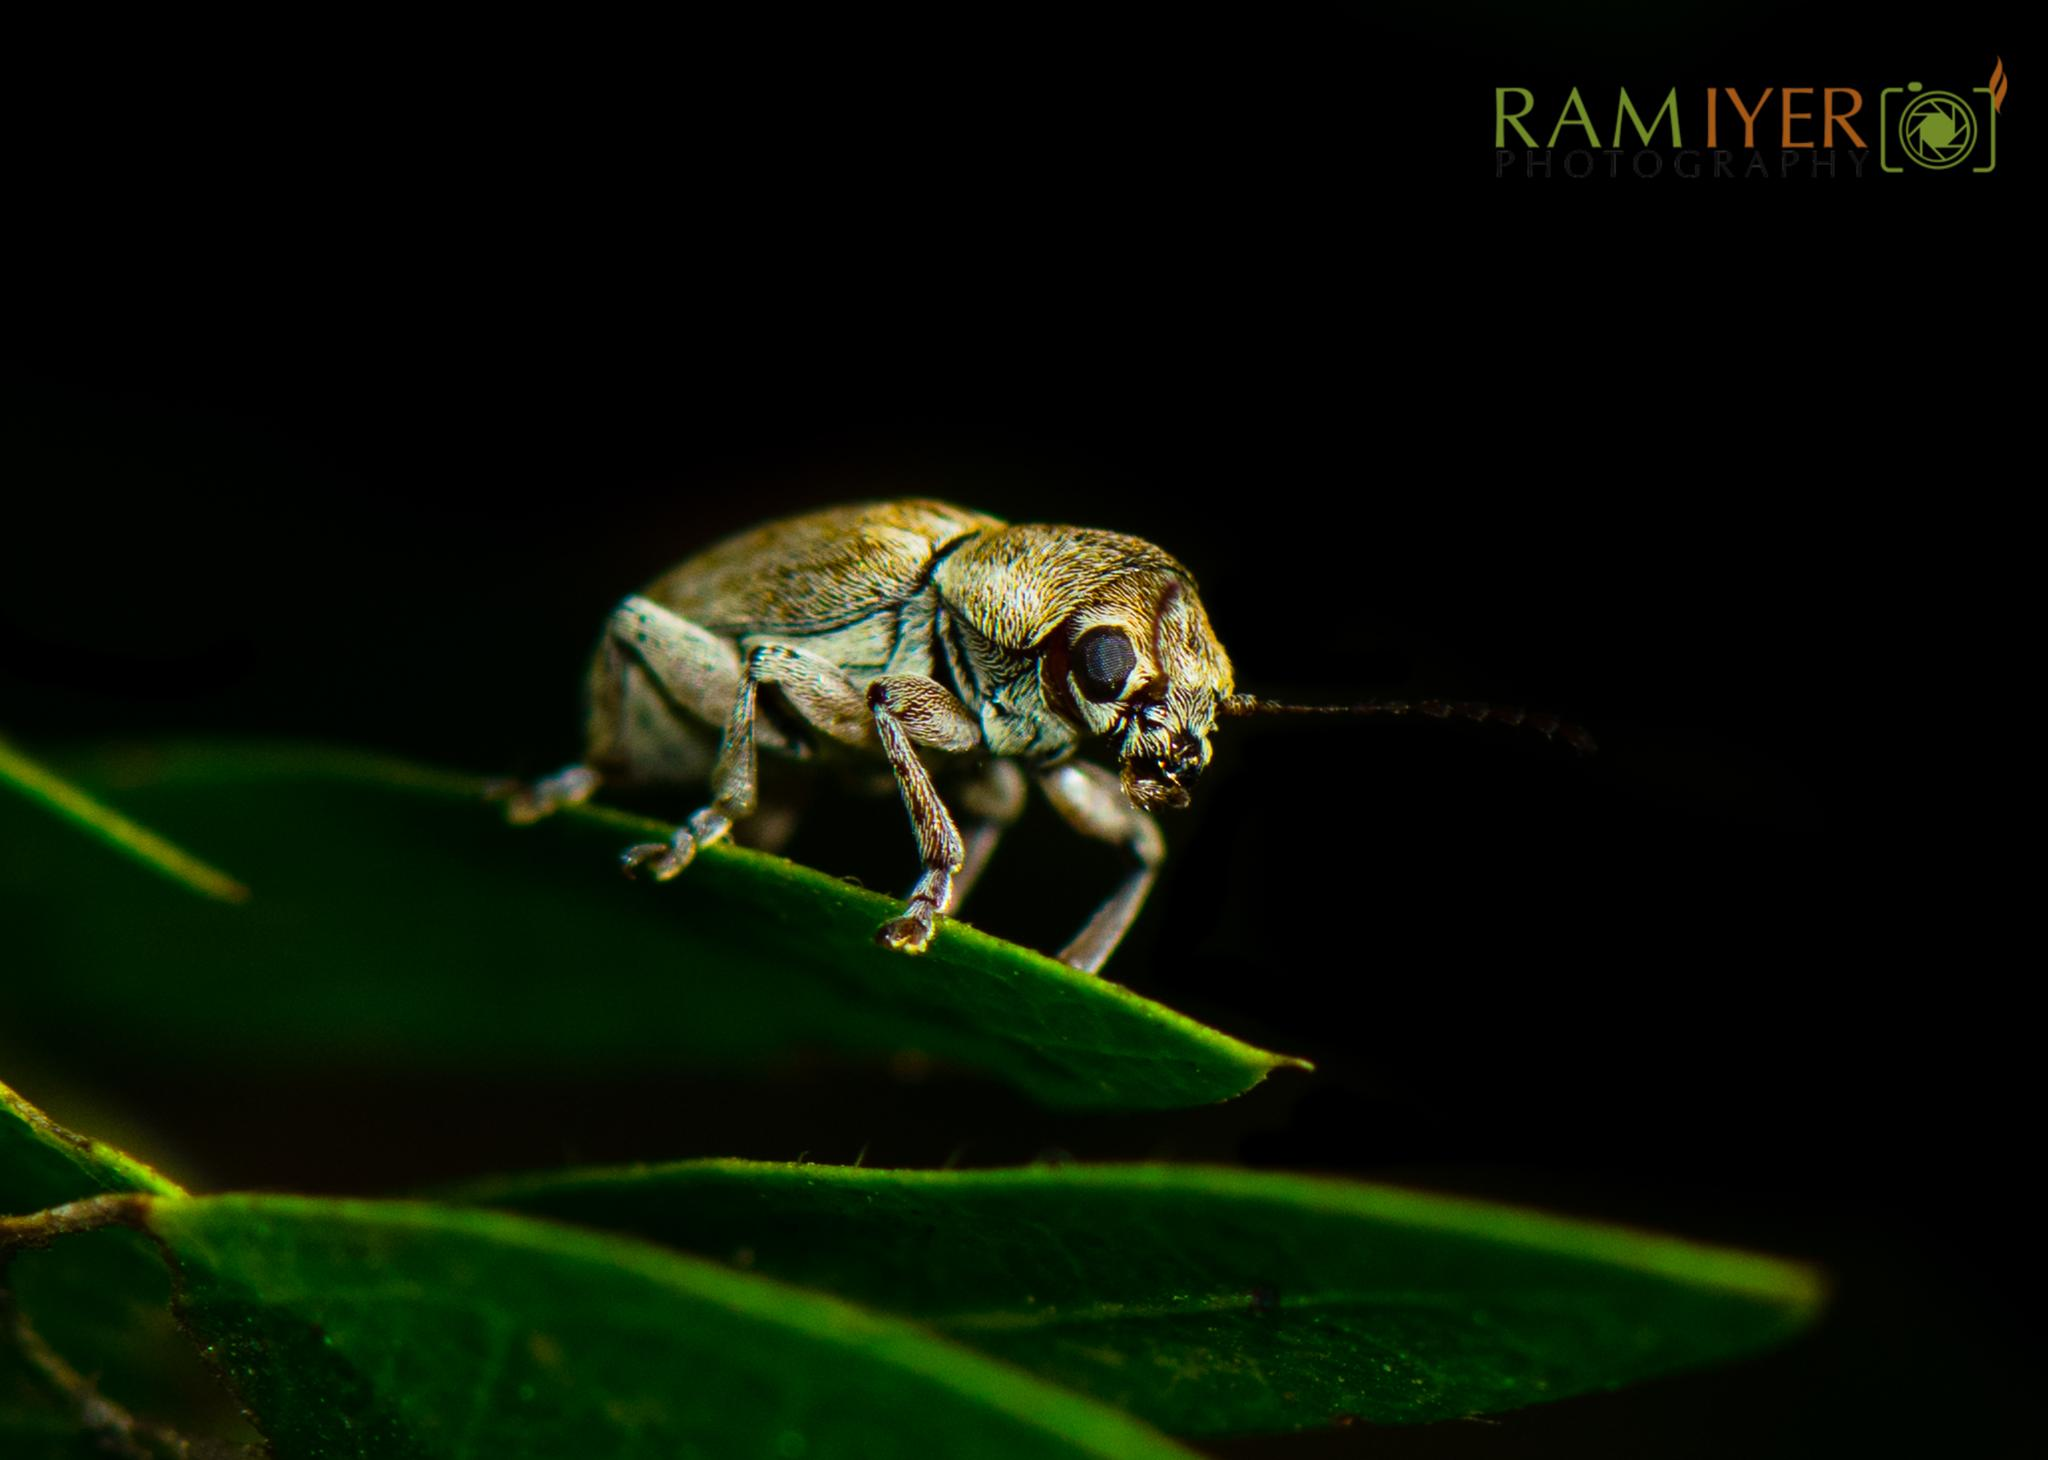 Just for you CLOSELY!!! by Ram Iyer